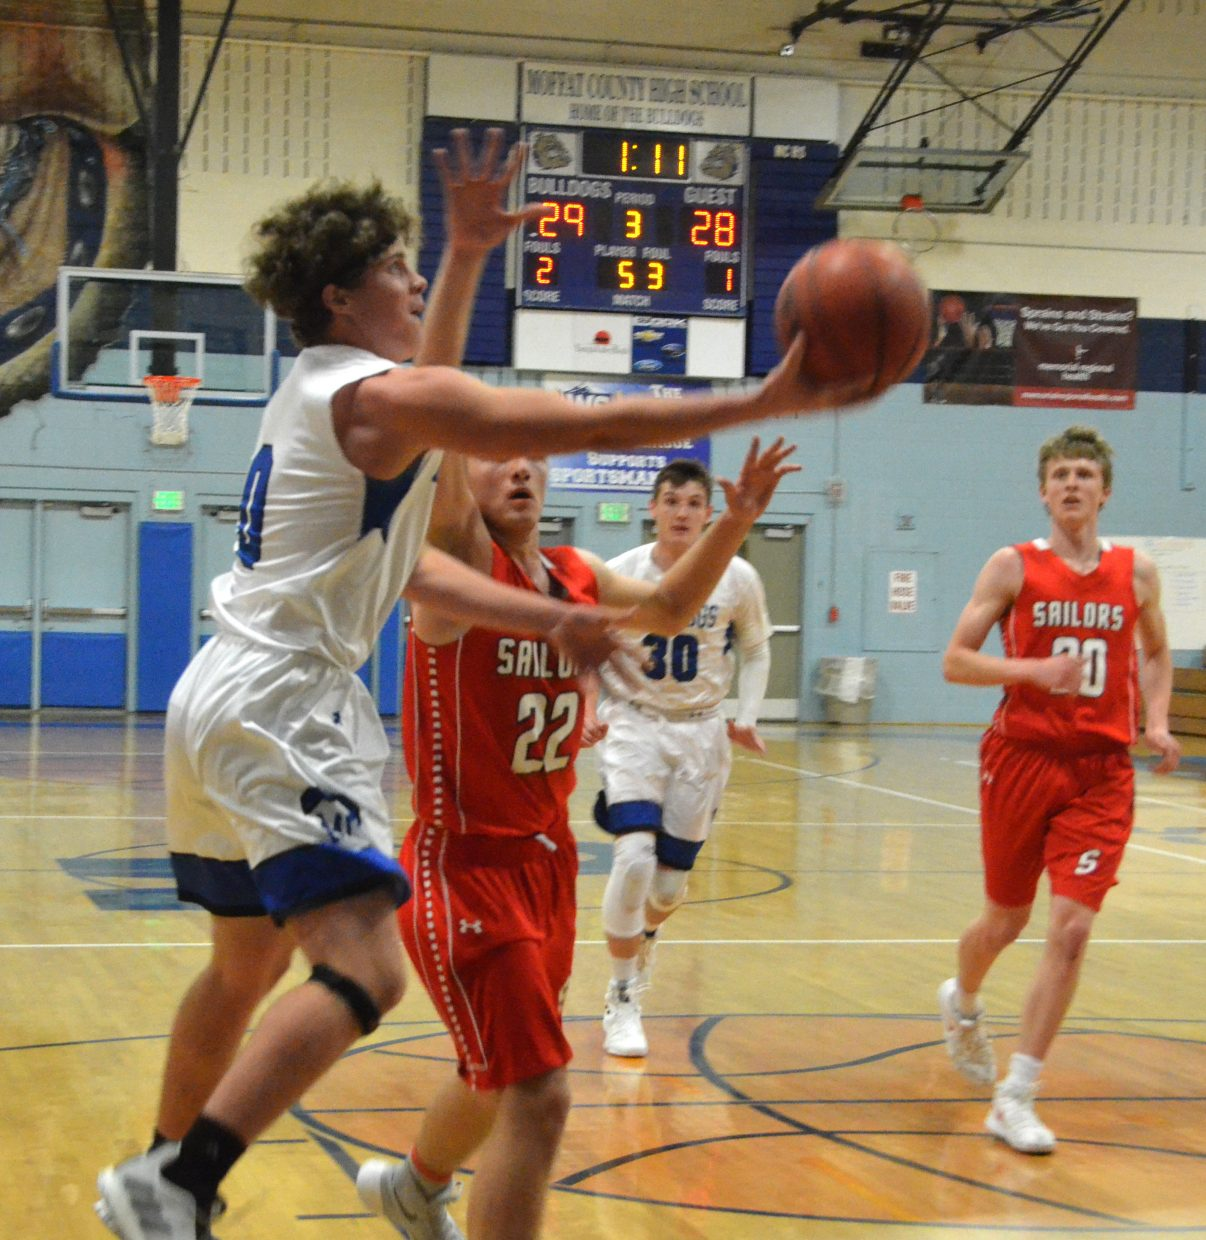 Moffat County High School's Cale Scranton goes in for an underhanded layup against Steamboat Springs.